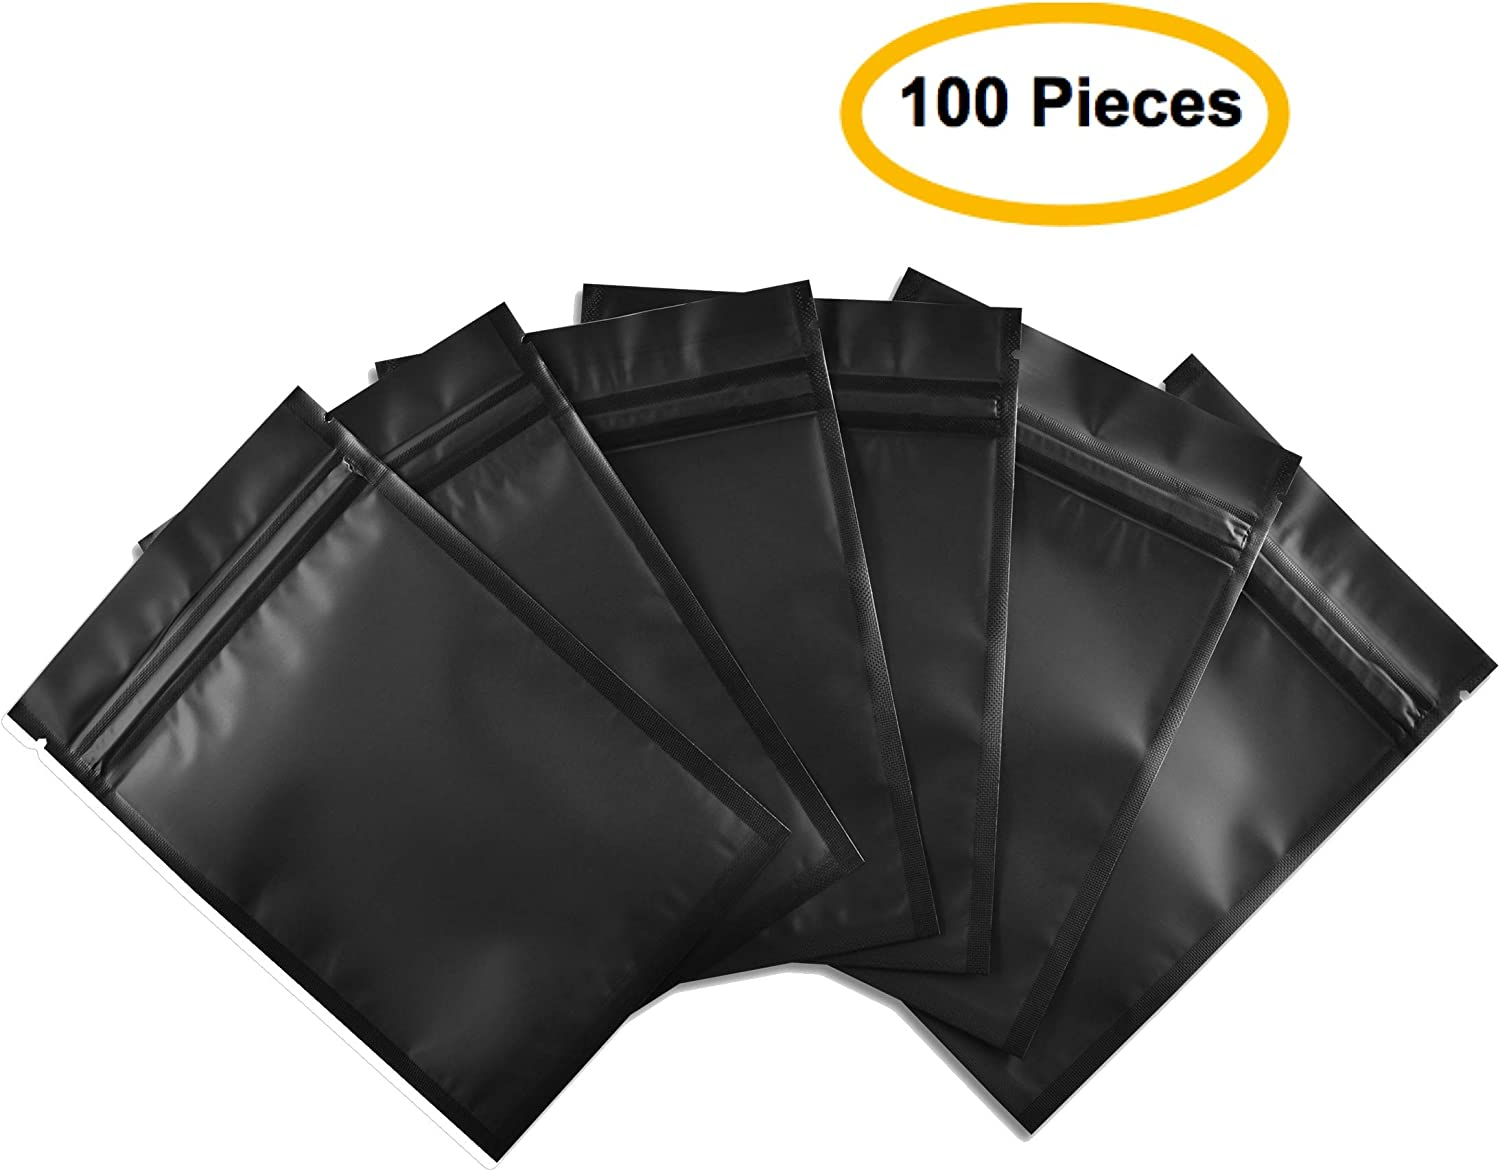 Colsen 100 Foil Pouch Bag Flat Ziplock Bag for Daily Life or Party Supplies, Black (4 x 6 Inches Pack of 100)